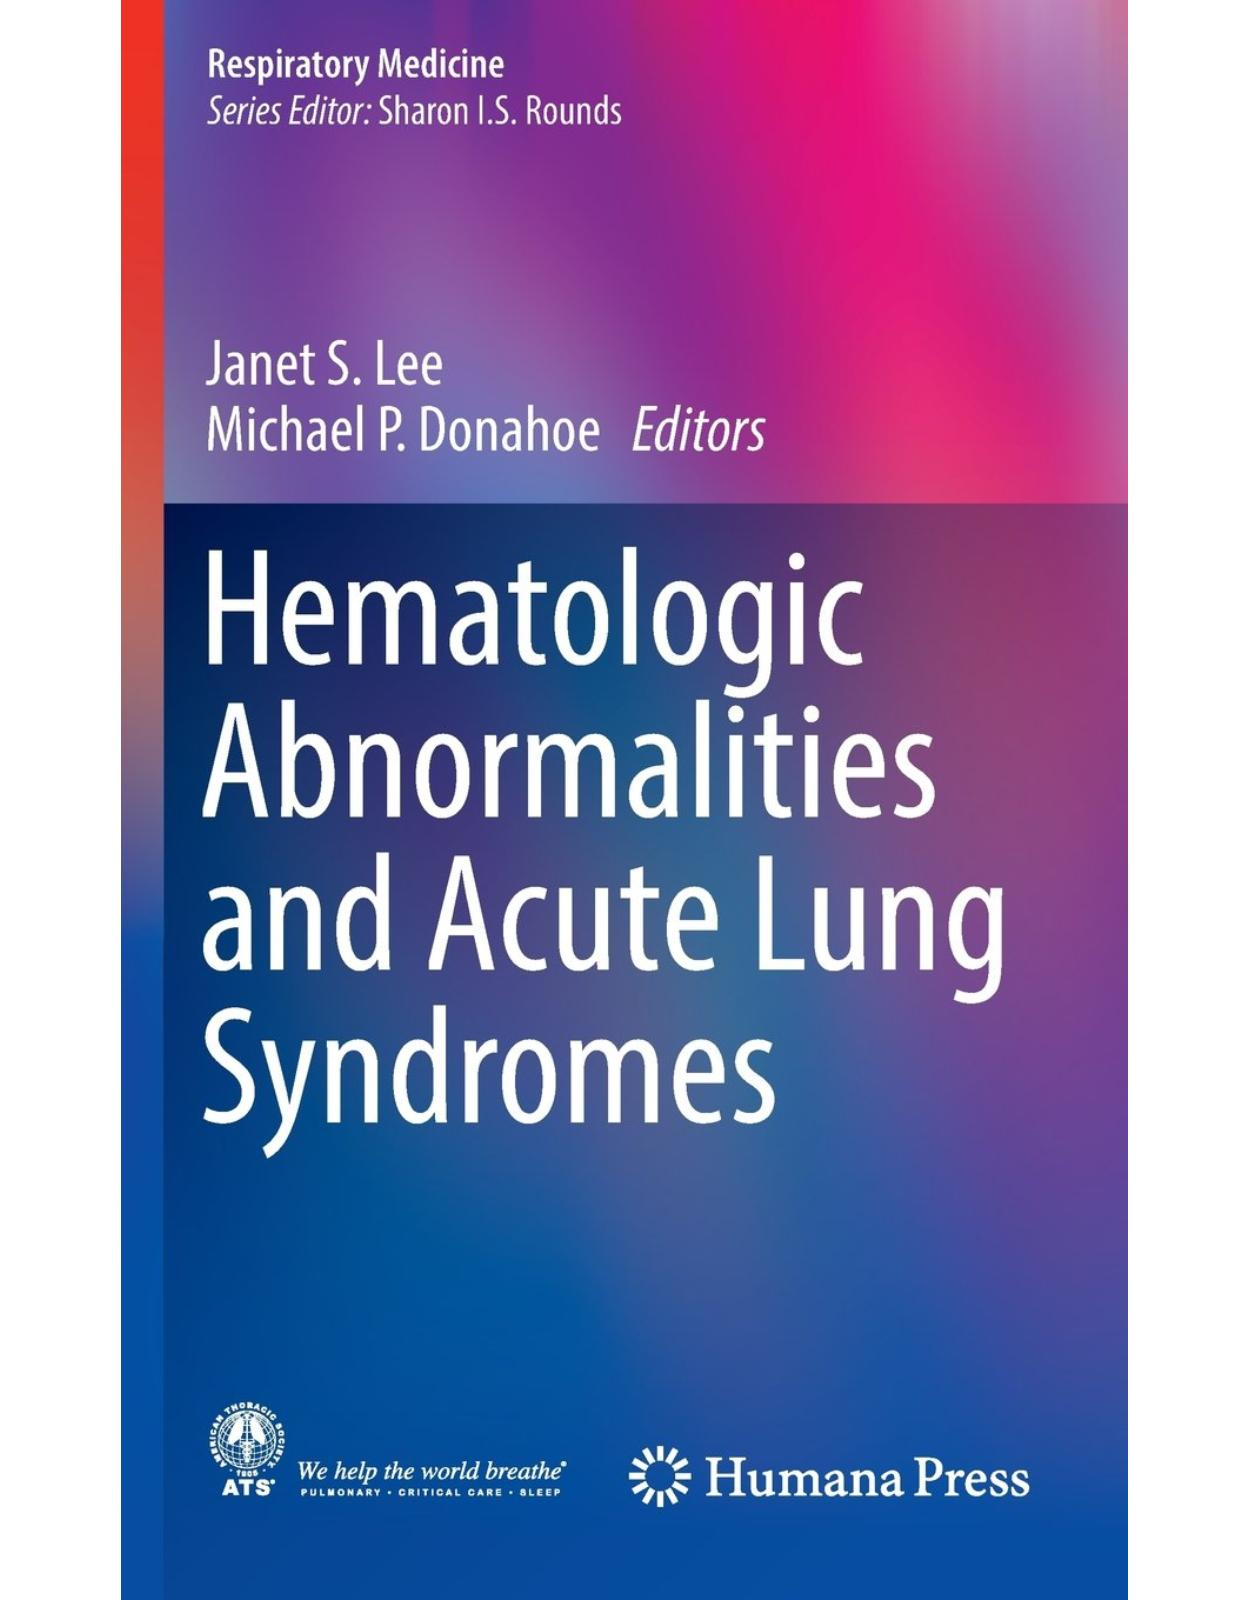 Hematologic Abnormalities and Acute Lung Syndromes